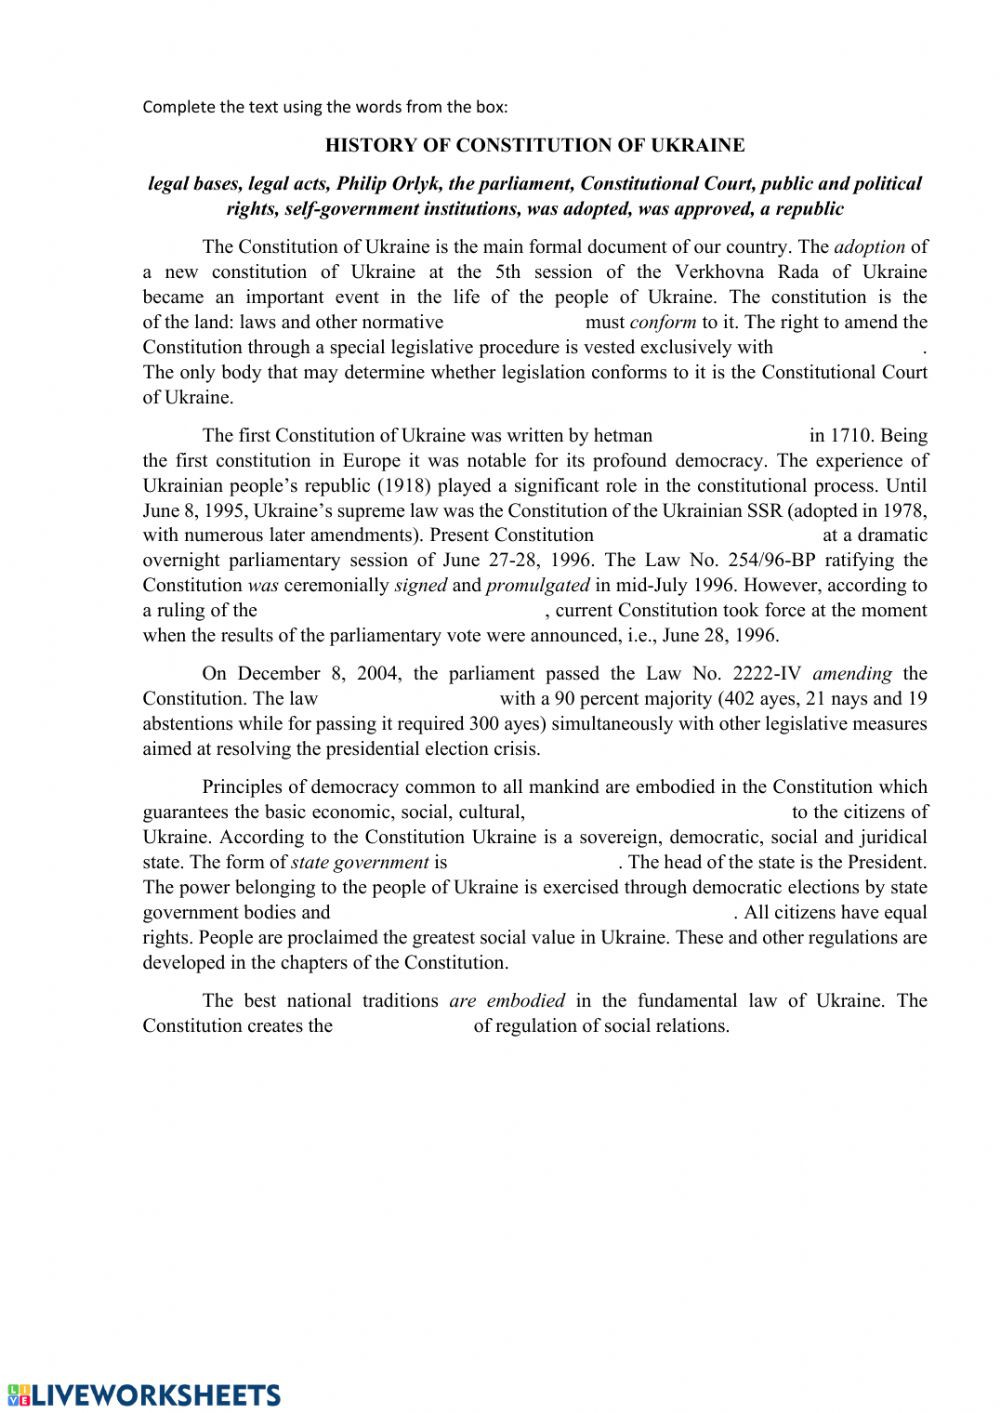 The Constitution Worksheet Answers History Of Constitution Of Ukraine Interactive Worksheet